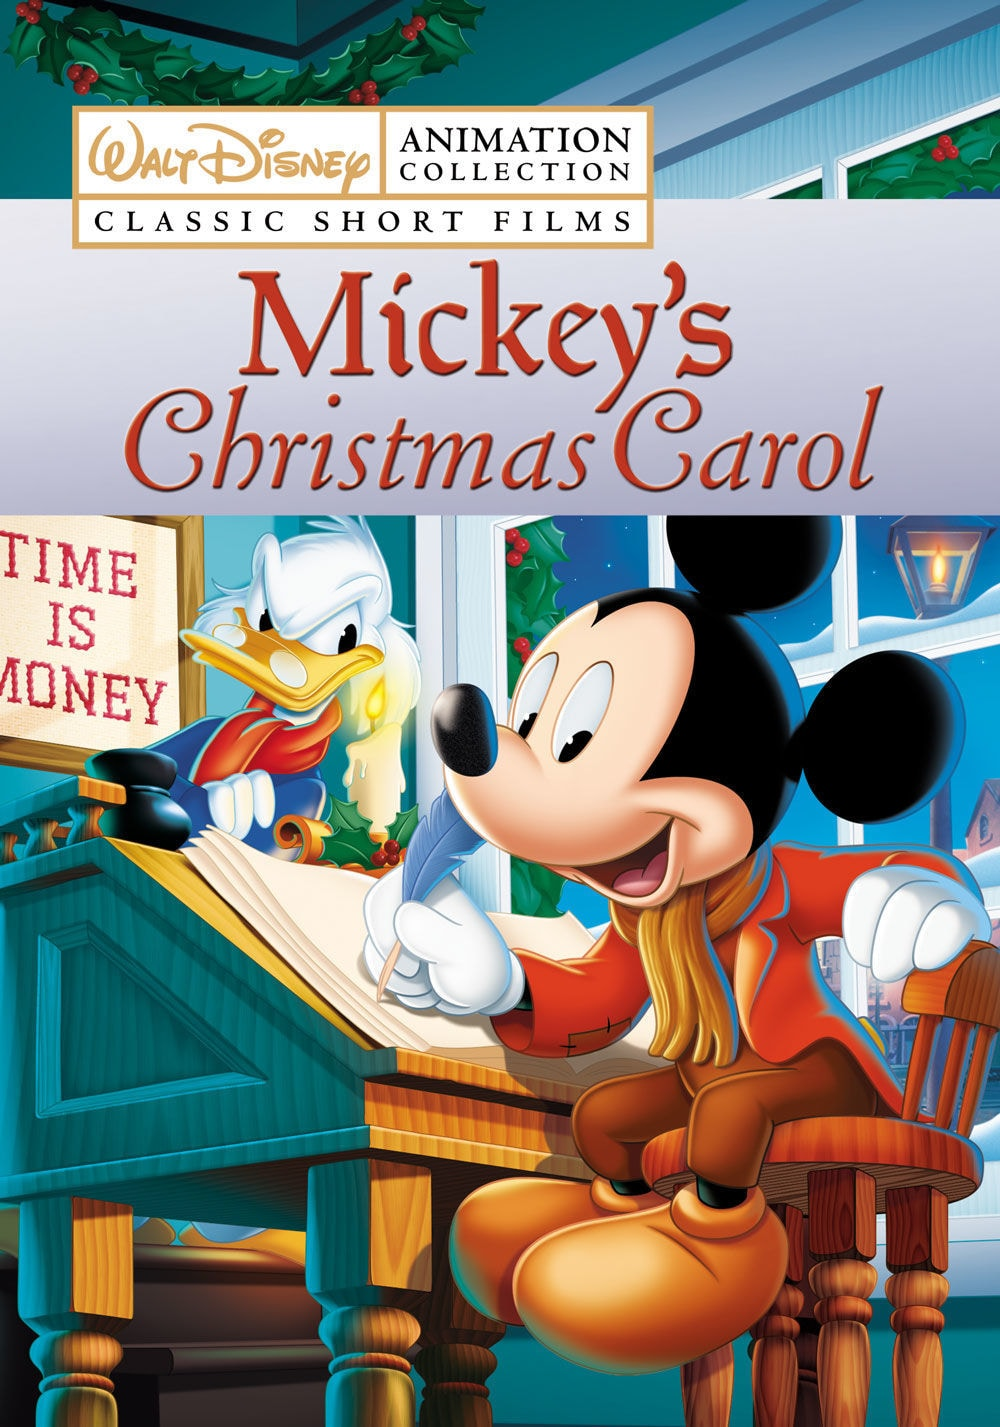 disney animation collection volume 7 mickeys christmas carol - Classic Animated Christmas Movies